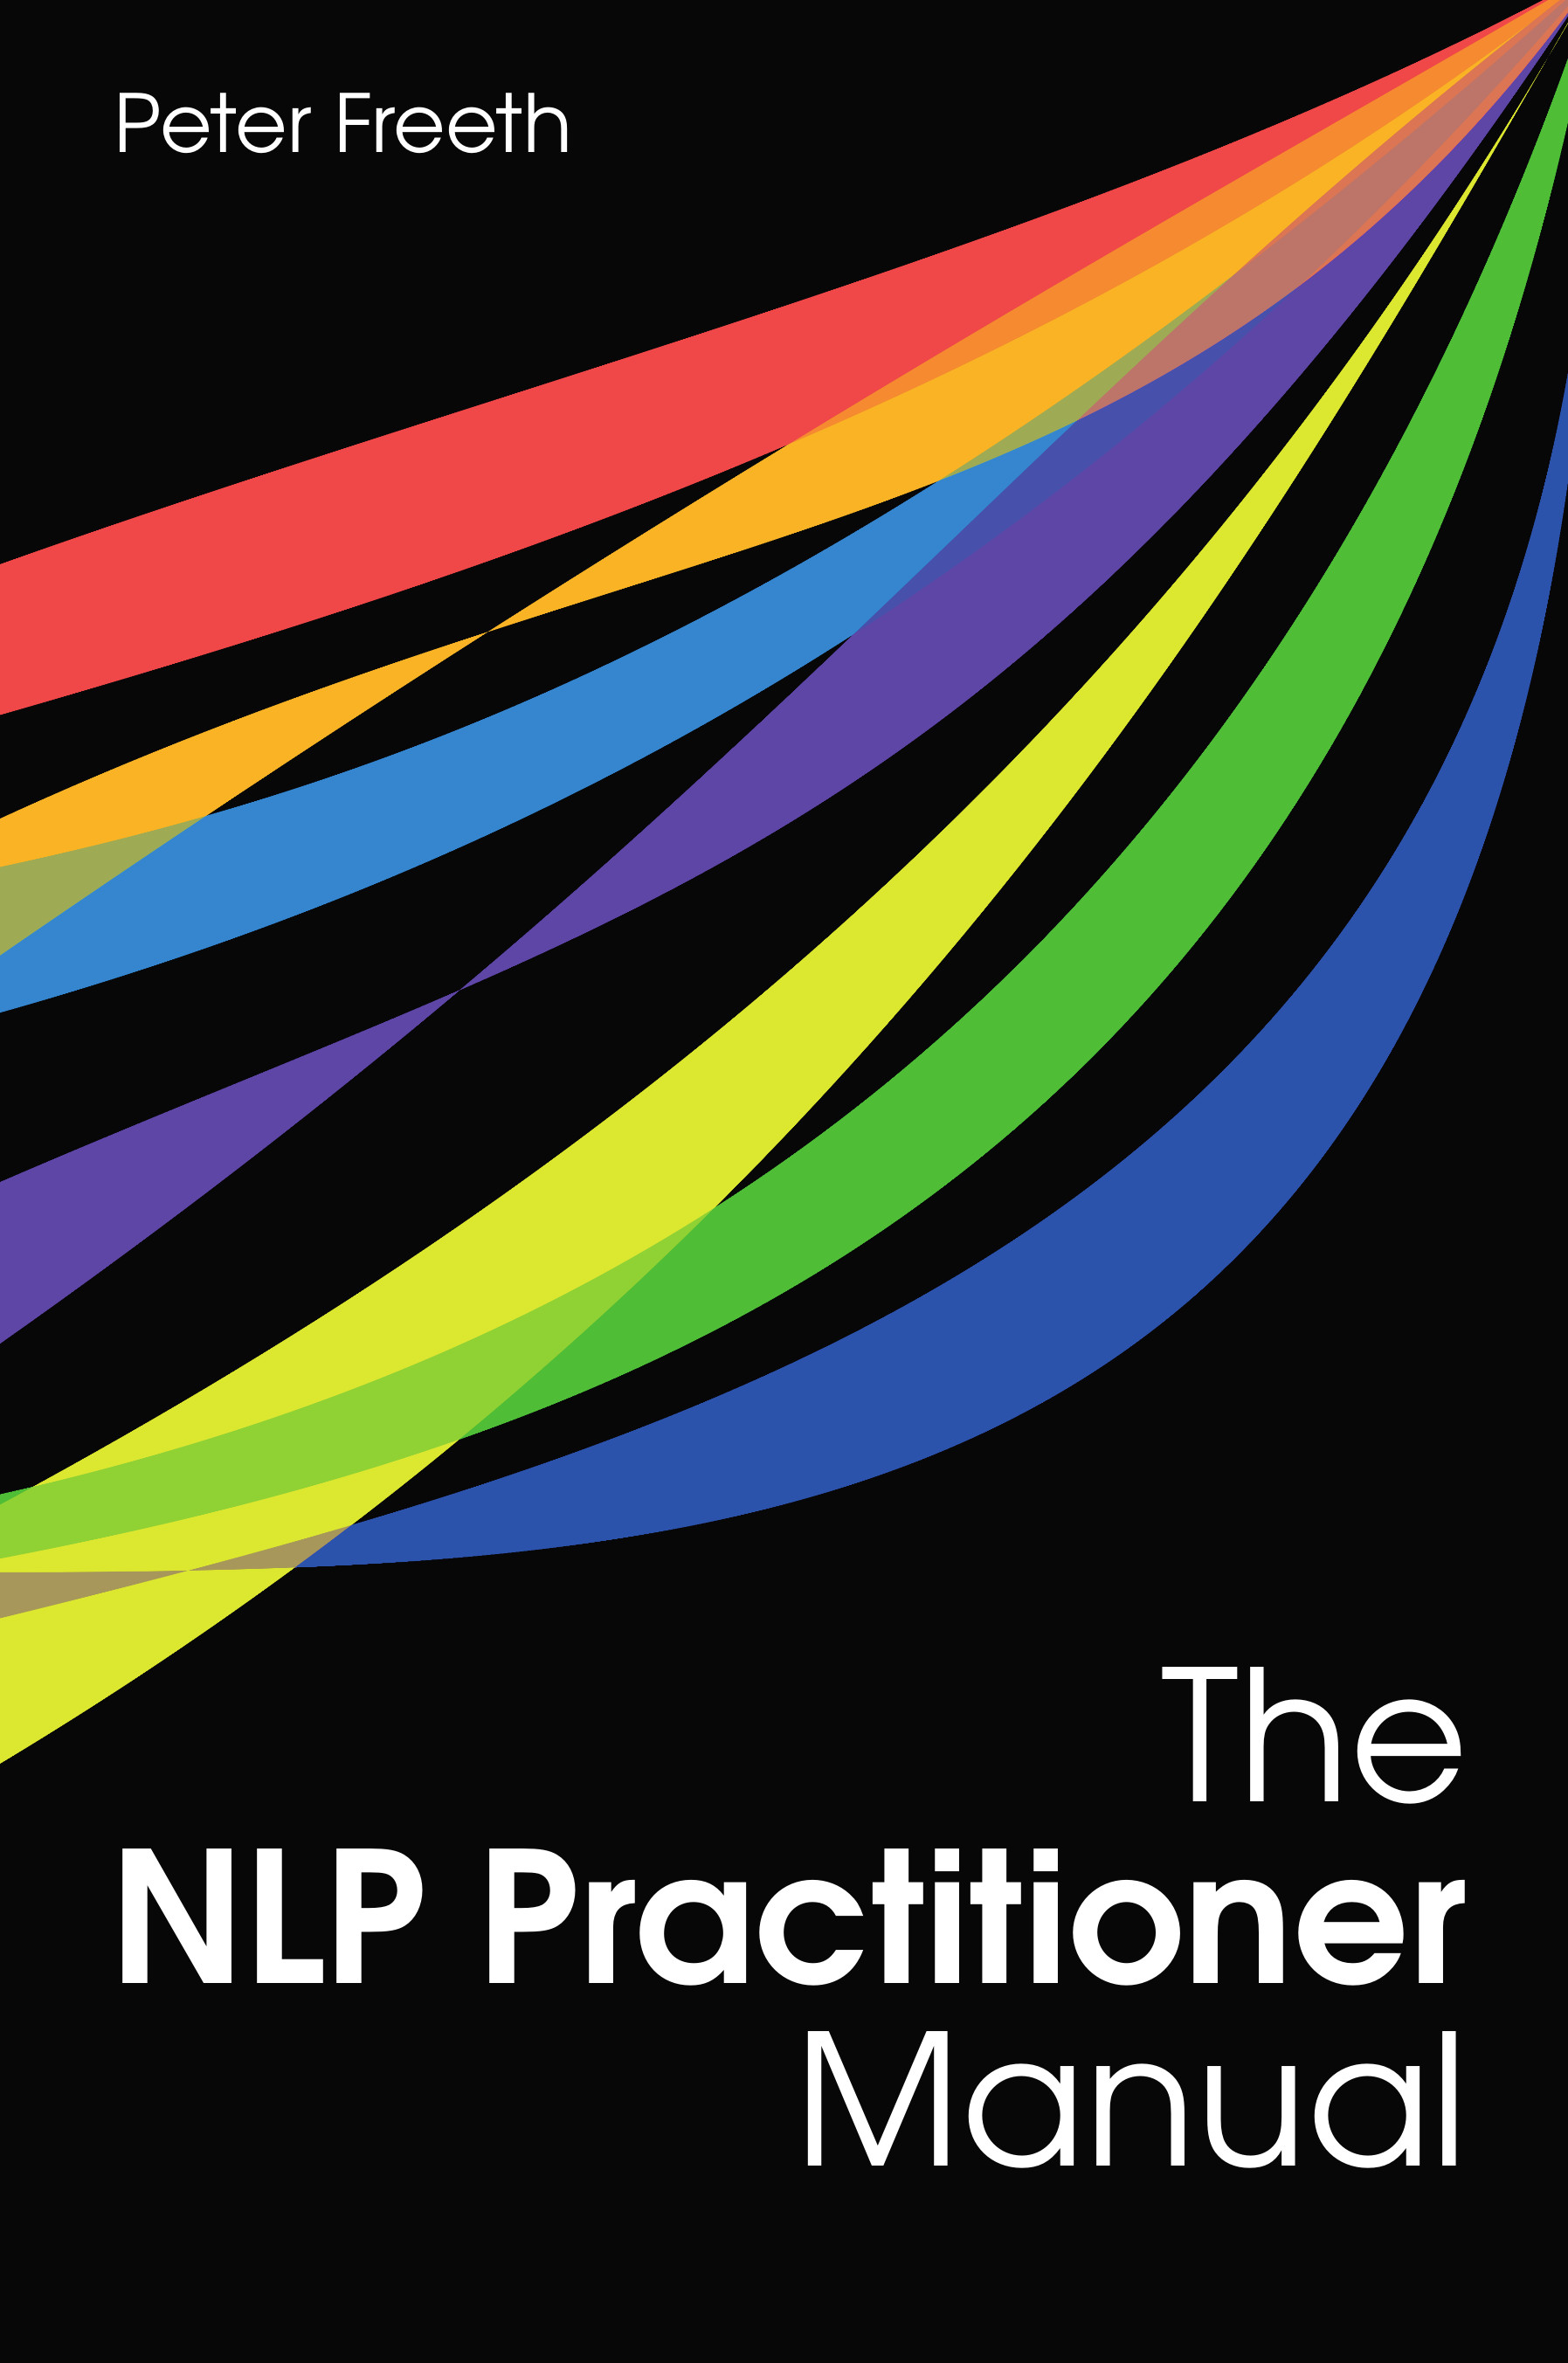 The NLP Practitioner Manual by Peter Freeth.  The NLP Practitioner Manual is a complete companion for any NLP Practitioner training. You can read it as 'an Introduction to NLP' and follow along with the techniques and exercises, and you can use it to add depth to any NLP Practitioner training you've already attended, to fill in the gaps and show you how to really use NLP.